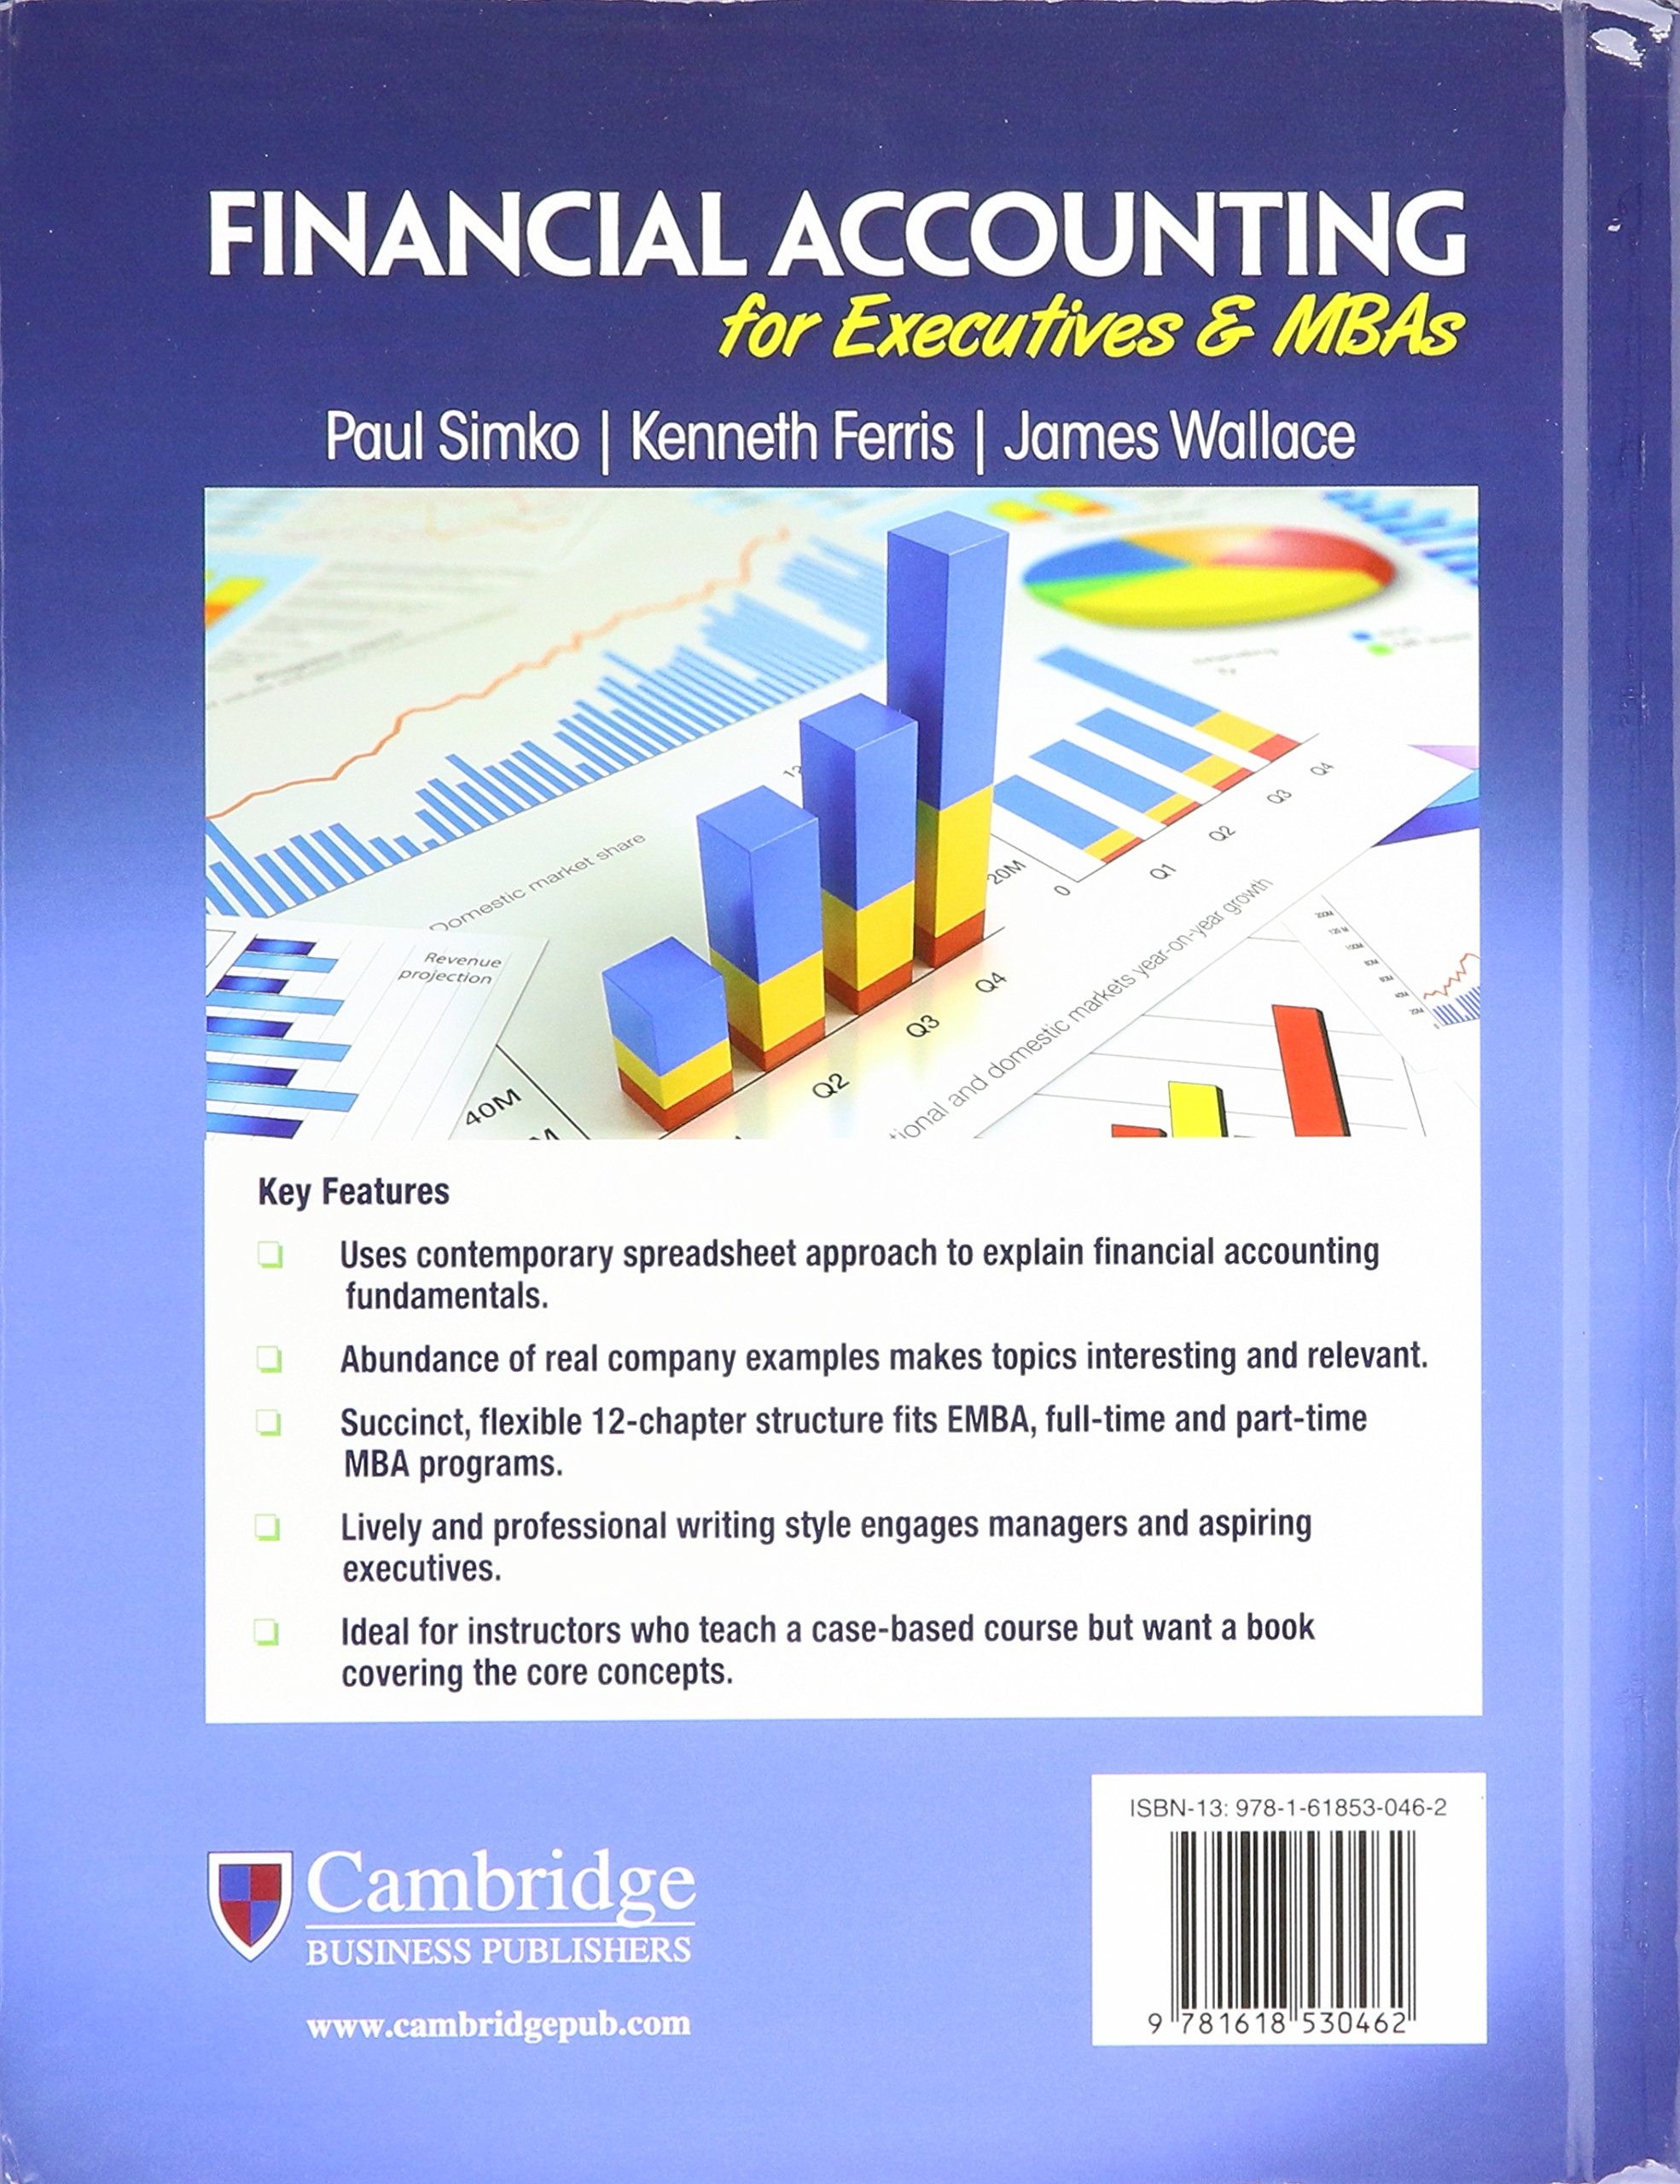 Financial Accounting for Executives and MBAs: Paul J. Simko: 9781618530462:  Amazon.com: Books